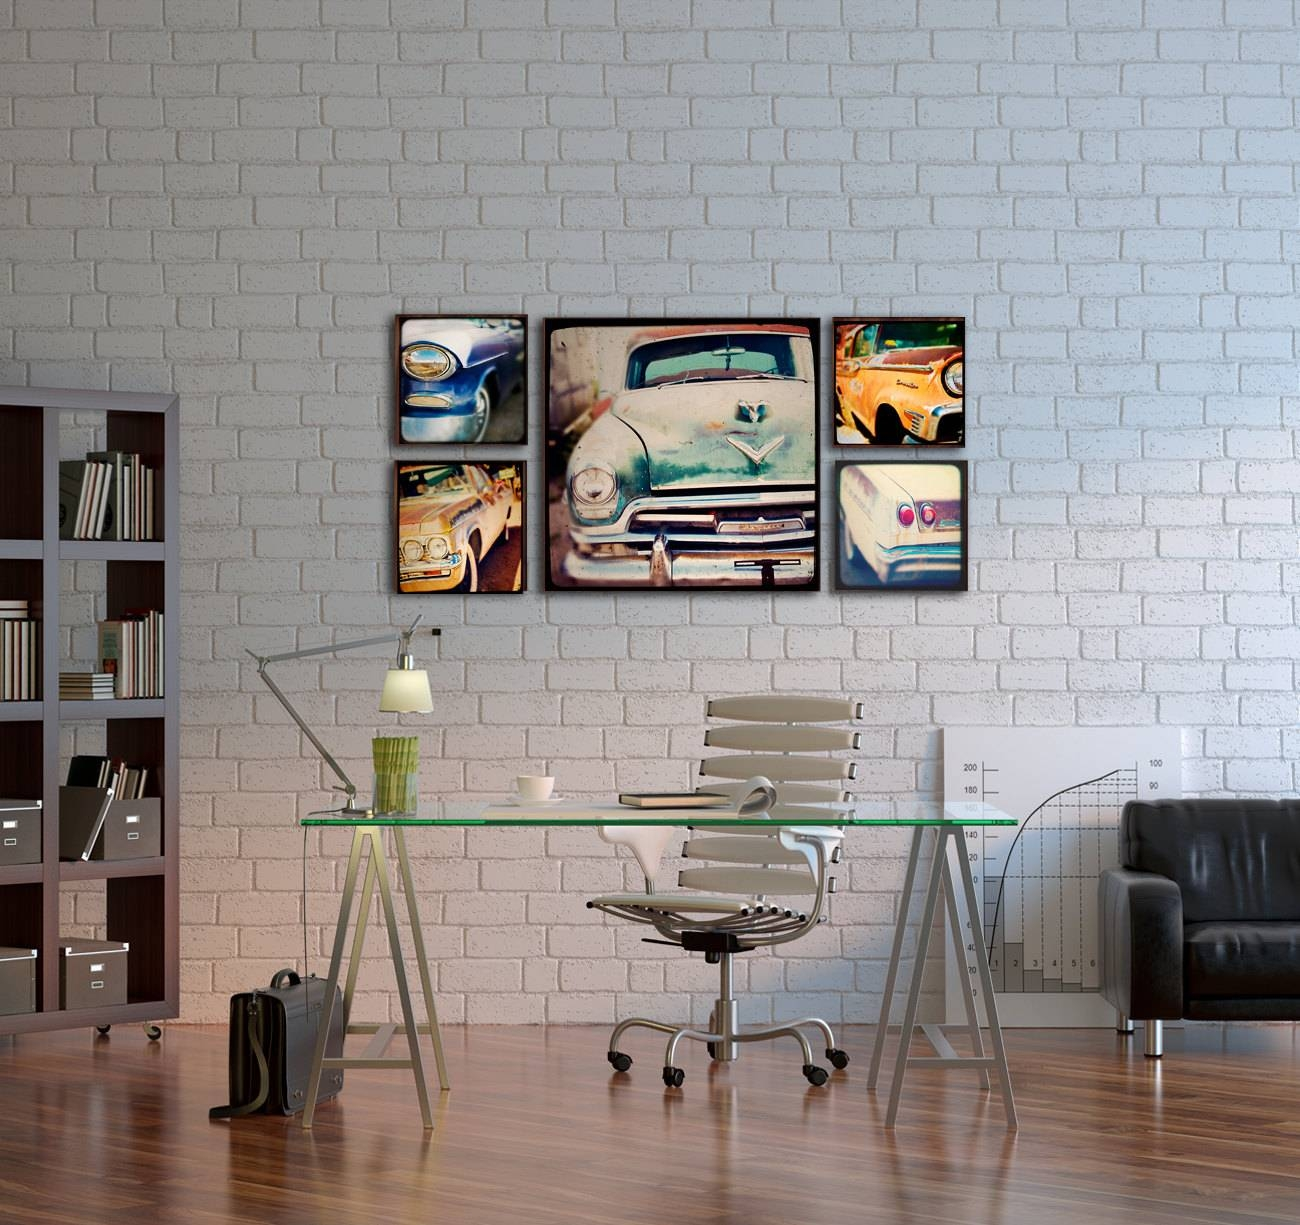 Wood Photo Blocks Vintage Cars Home Decor Wall Art Within Recent Wall Art For Offices (View 19 of 20)